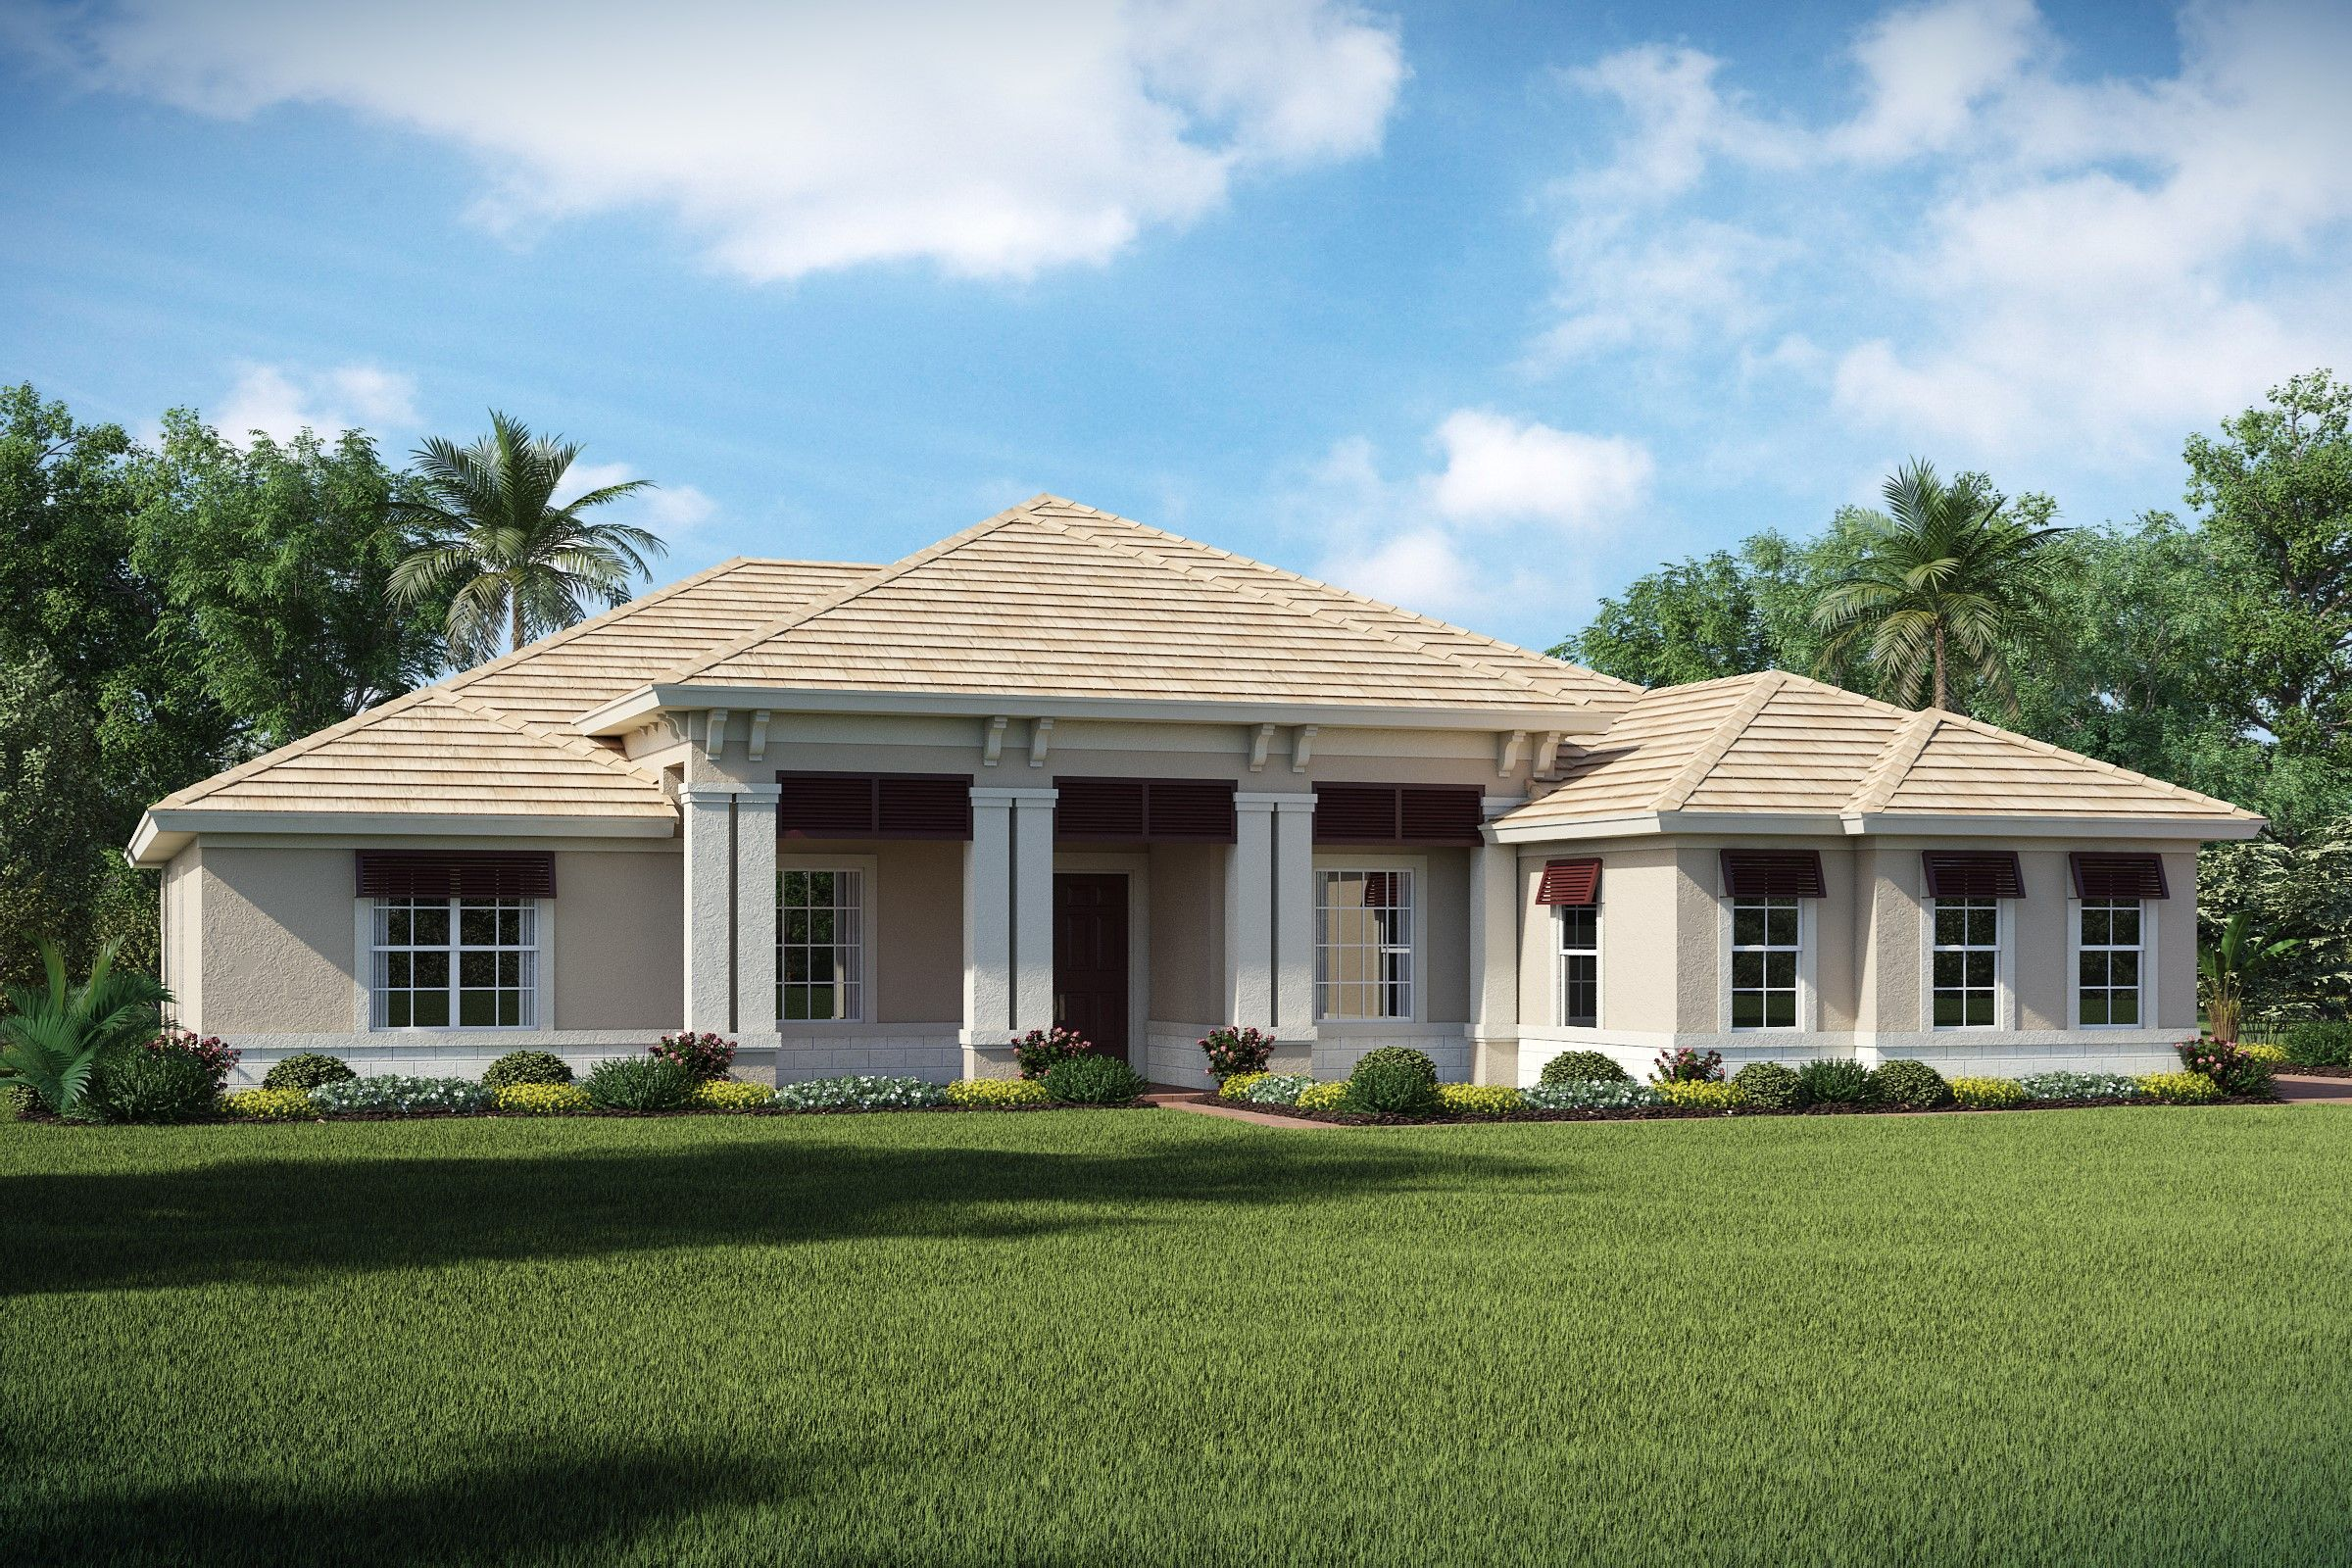 Single Family for Sale at Redtail - Mystique 32049 Red Tail Blvd Sorrento, Florida 32776 United States